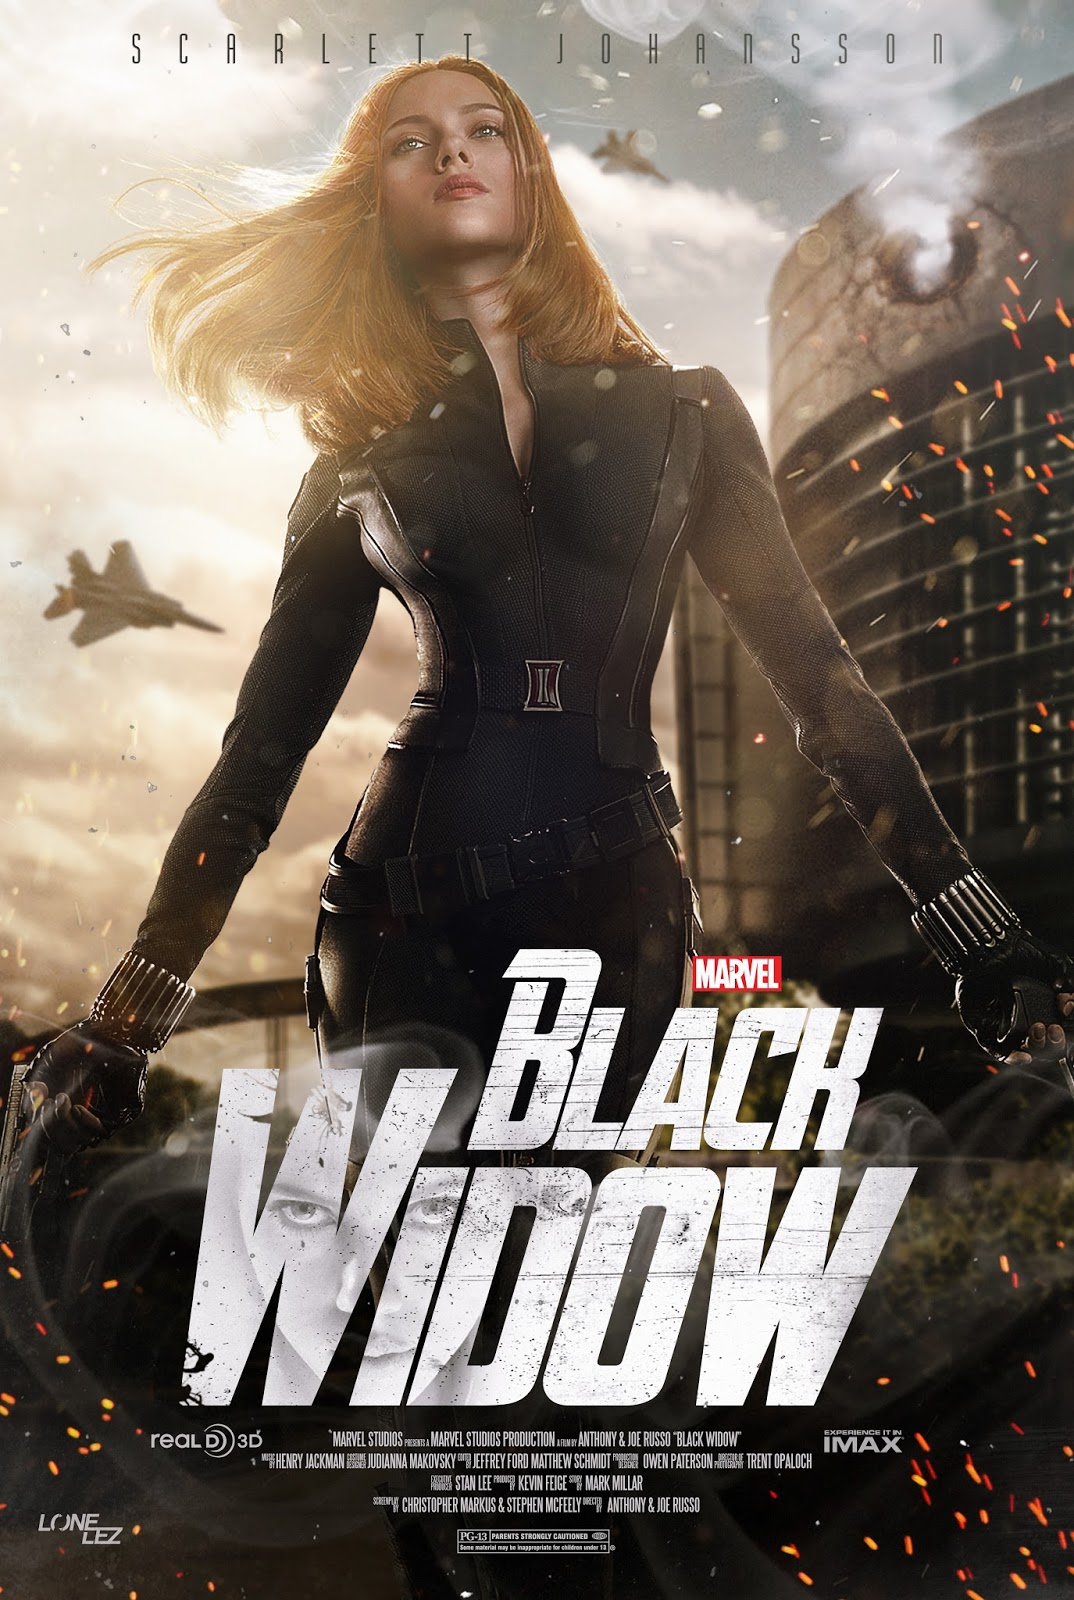 Black Widow after Civil War + New Solo Movie? | THEORY ... - photo#8